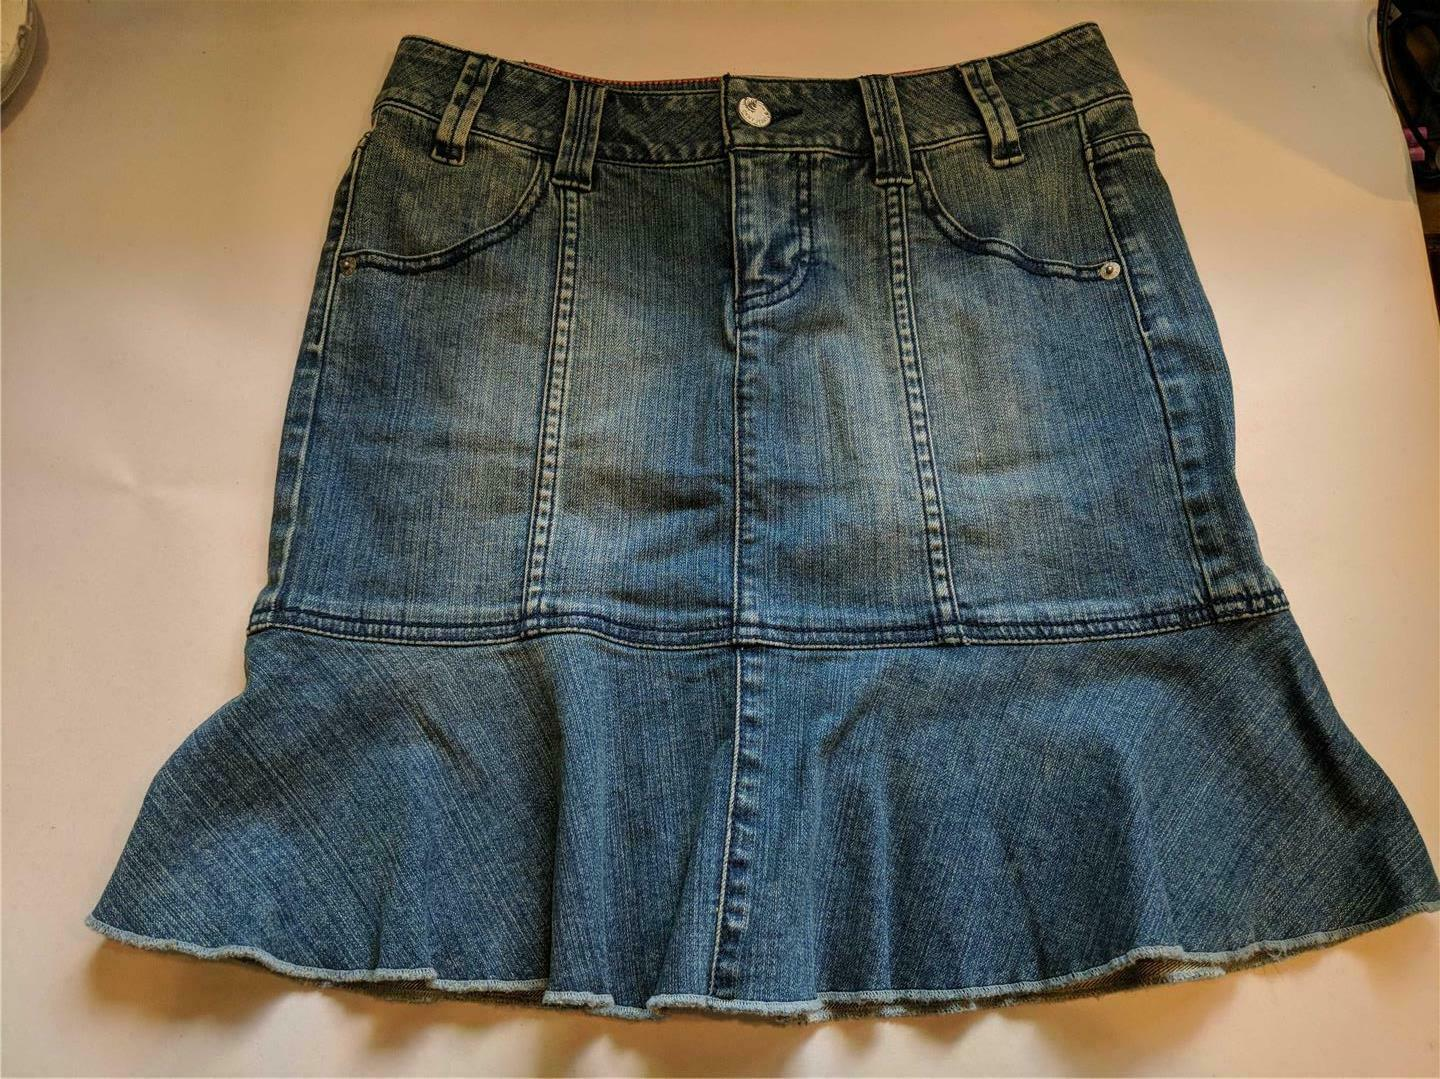 Primary image for DKNY Jeans Denim Skirt with Flounce Ruffle Women's Size 4P Pre-Owned